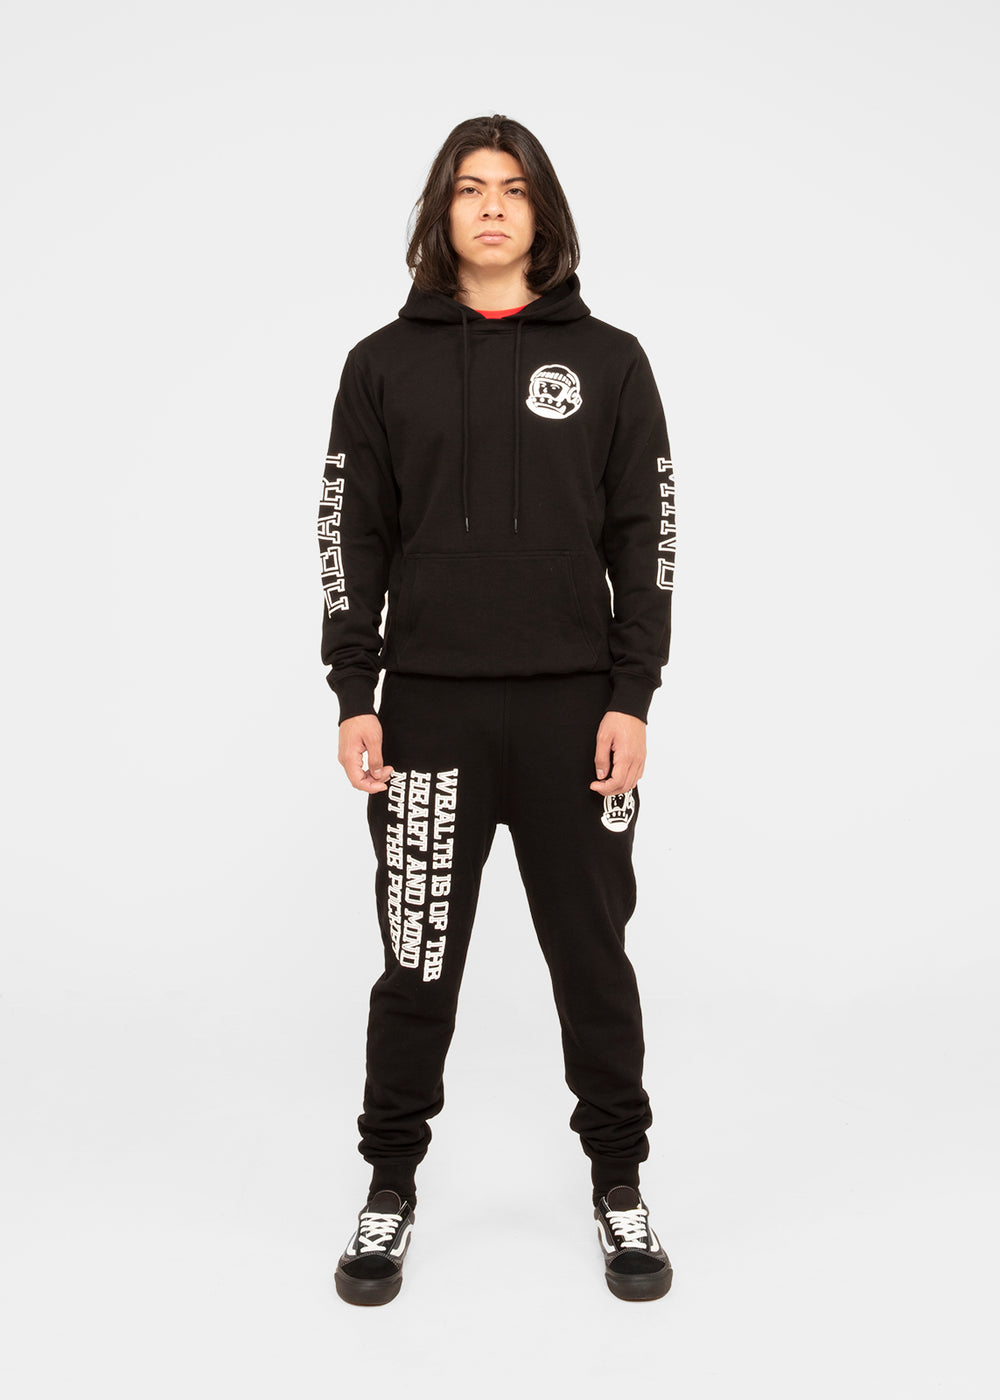 billionaire-boys-club-heartmind-hoodie-891-7307-blk-blk-4